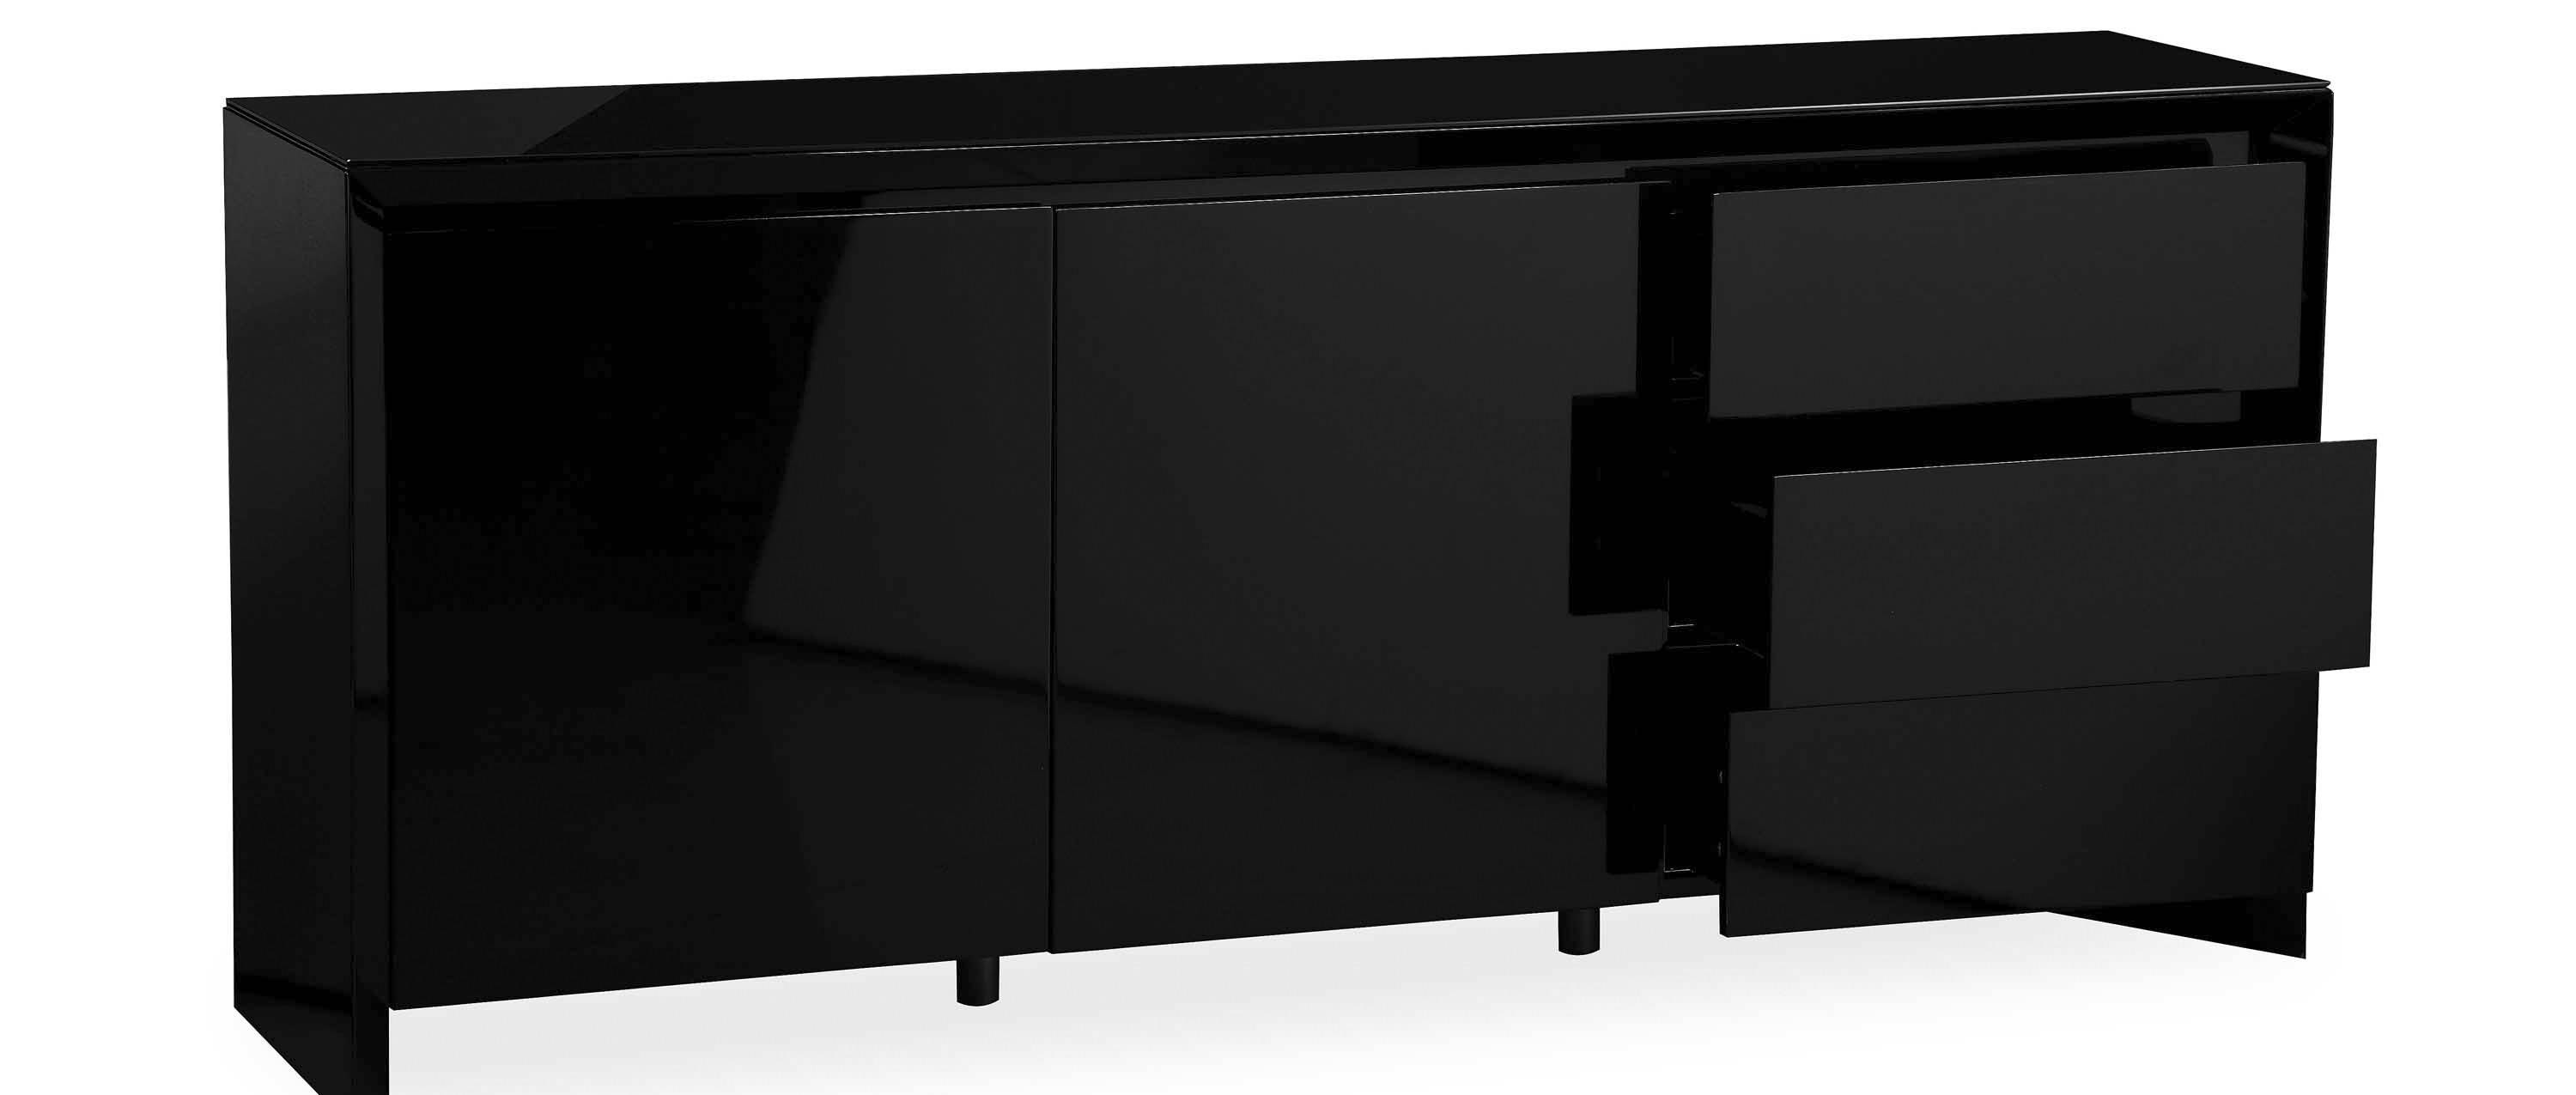 Soho – Extra Large Sideboard – Black High Gloss Intended For Black High Gloss Sideboards (#18 of 20)